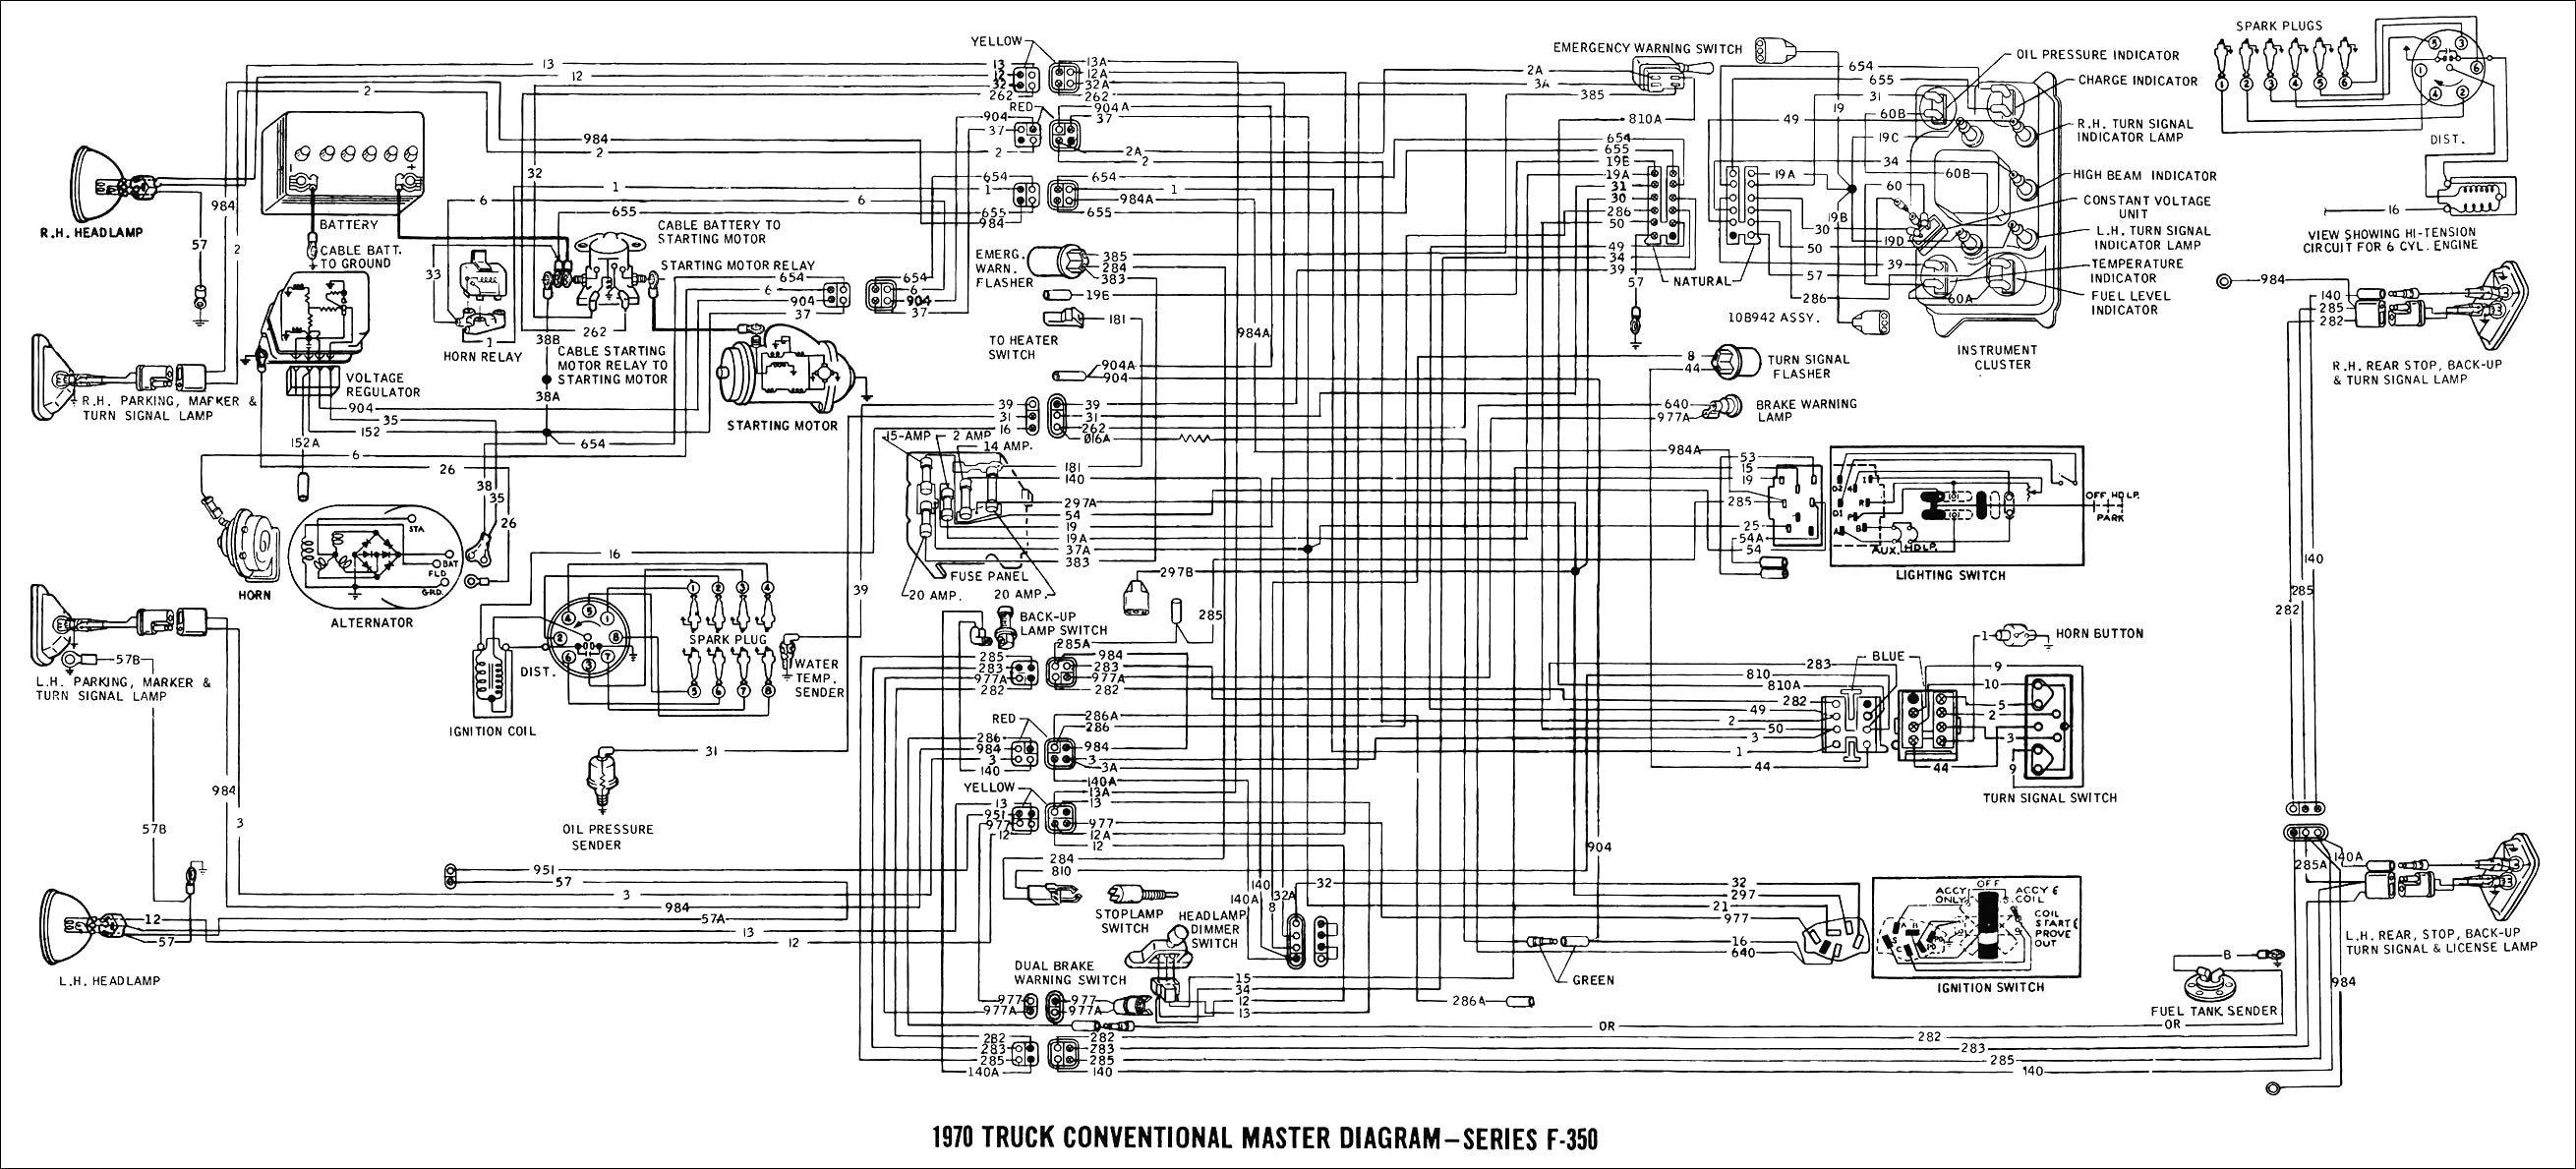 Ford 2G Alternator Wiring Diagram from i0.wp.com